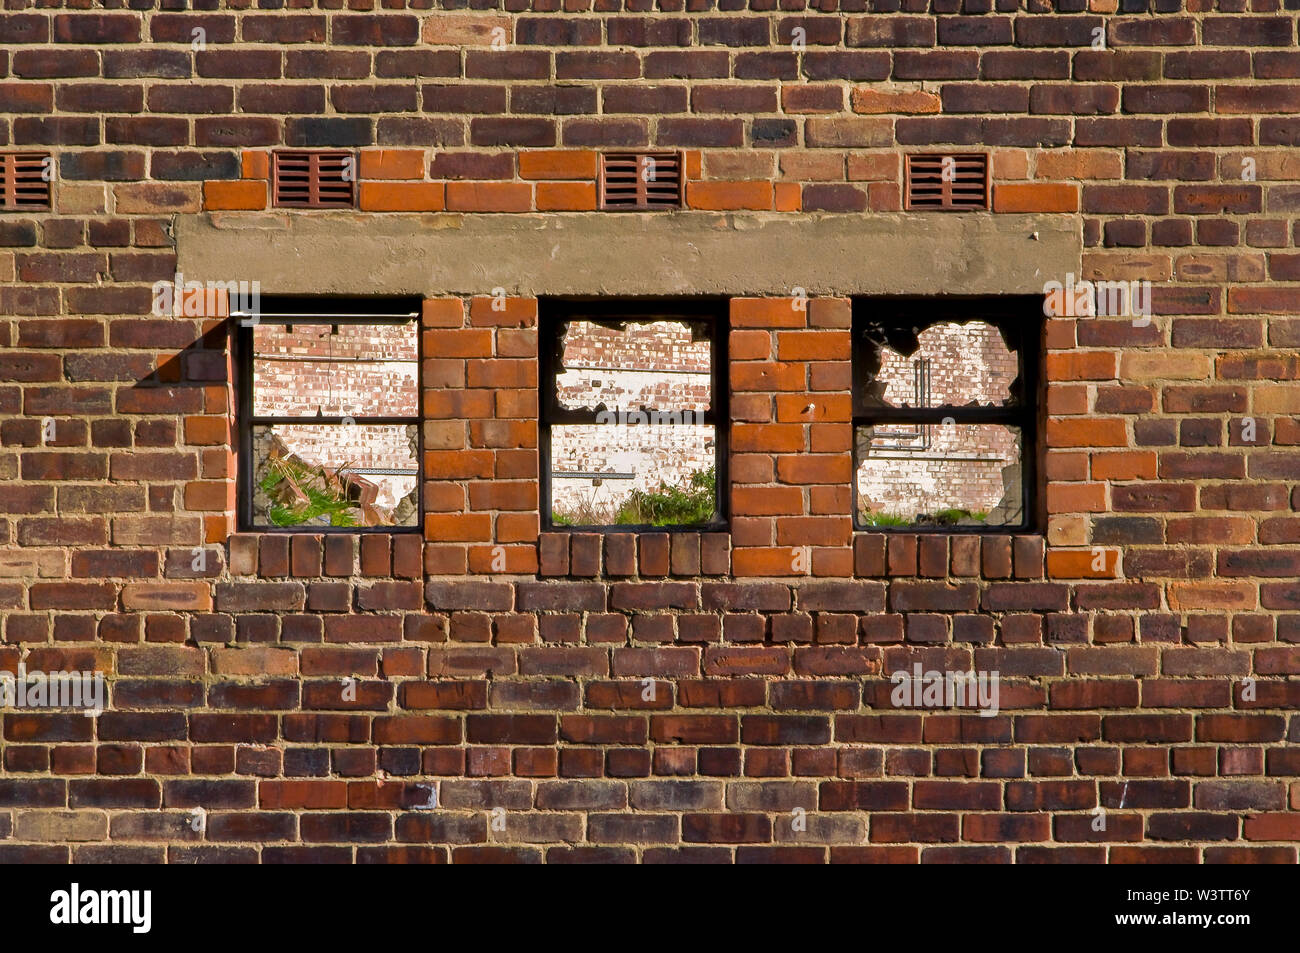 Three empty windows in the brick wall of a disused factory building Stock Photo